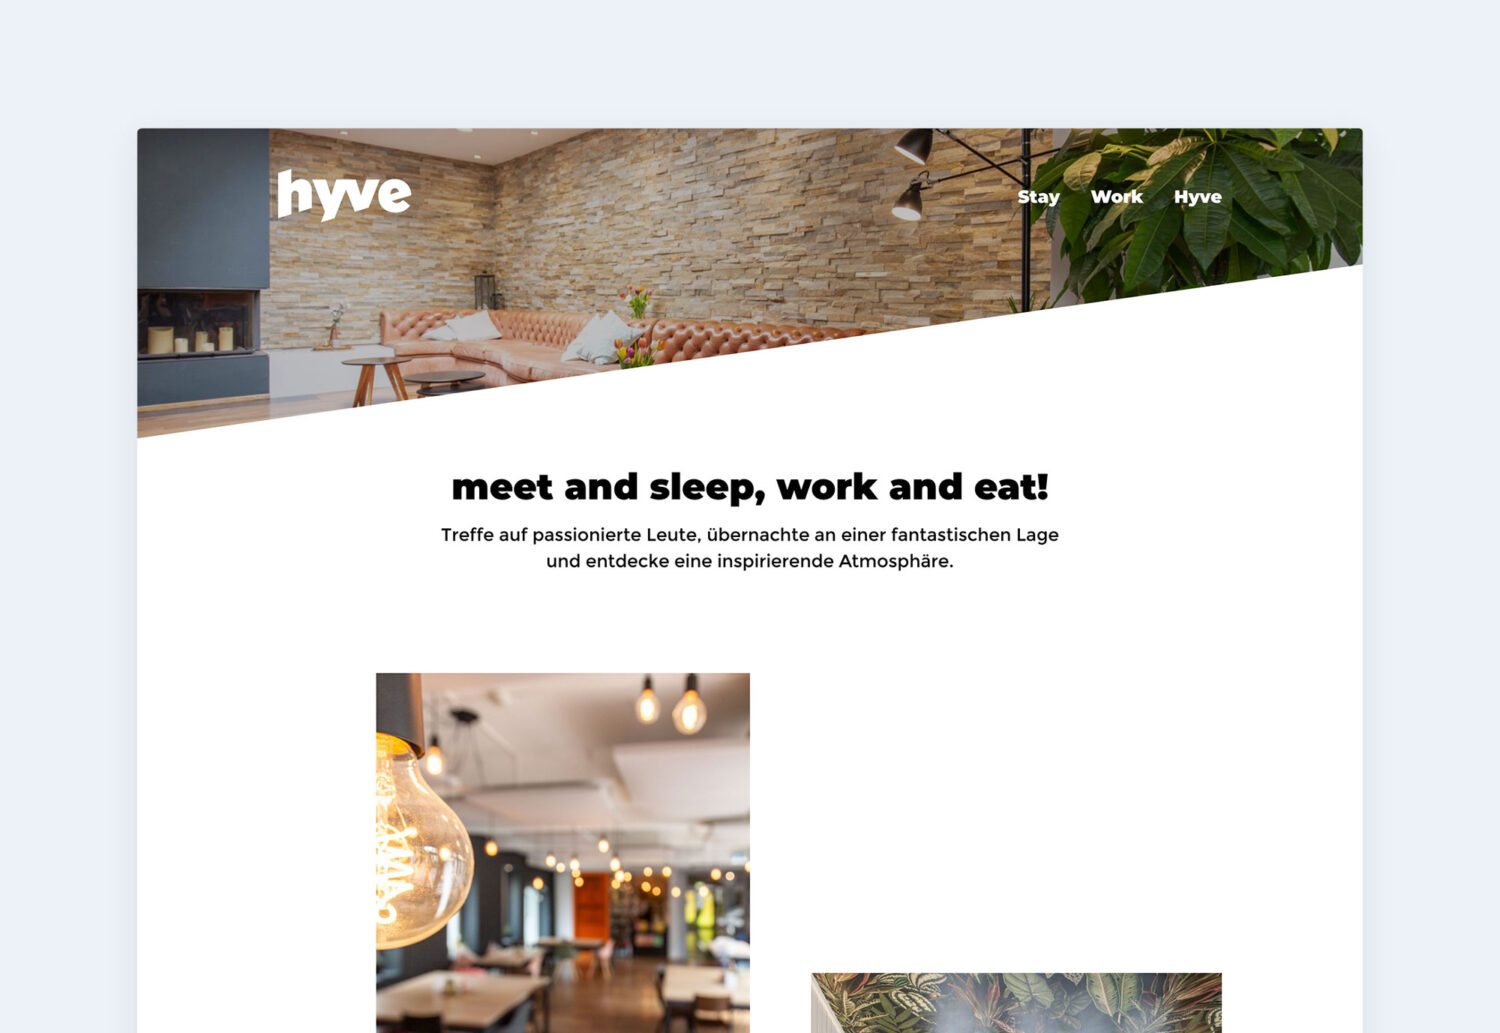 michael-aerni-project-hyve-frontpage